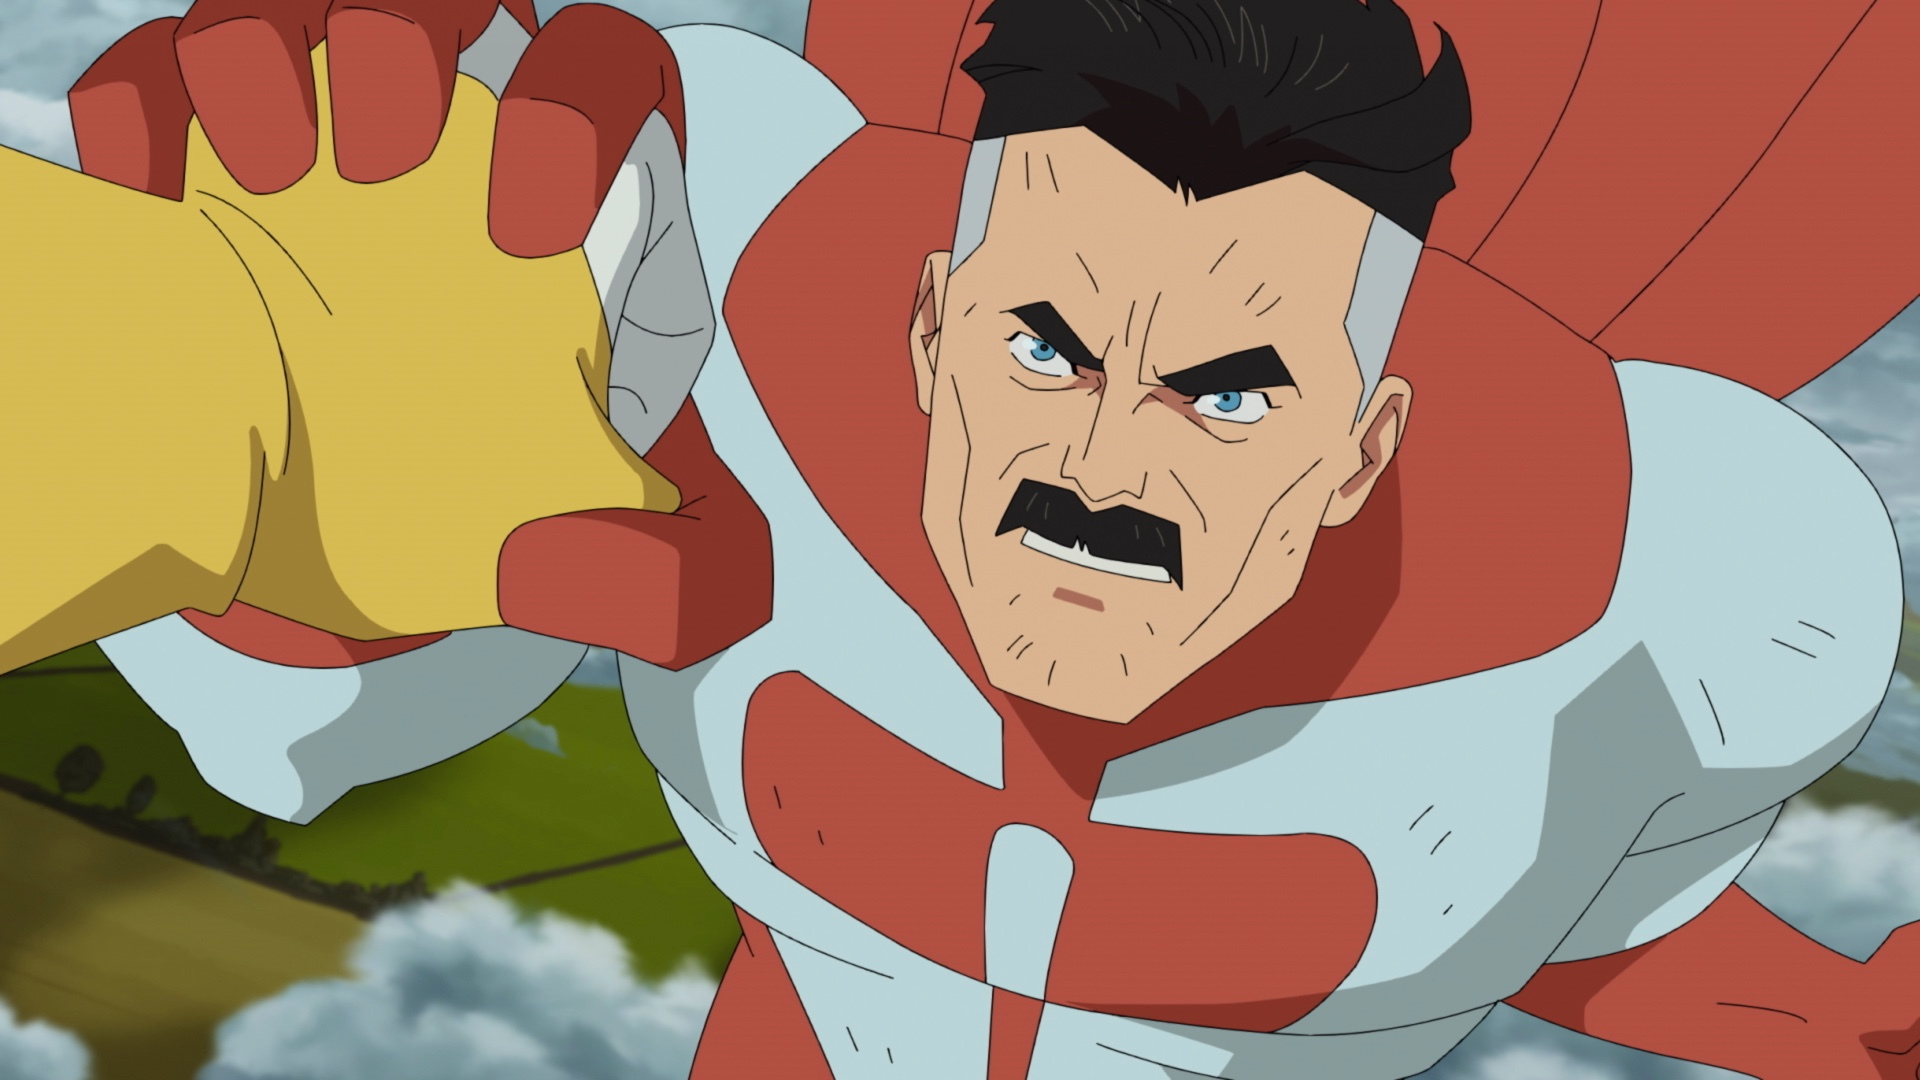 Invincible Episode 7 Improves Upon Its Already Great Source Material